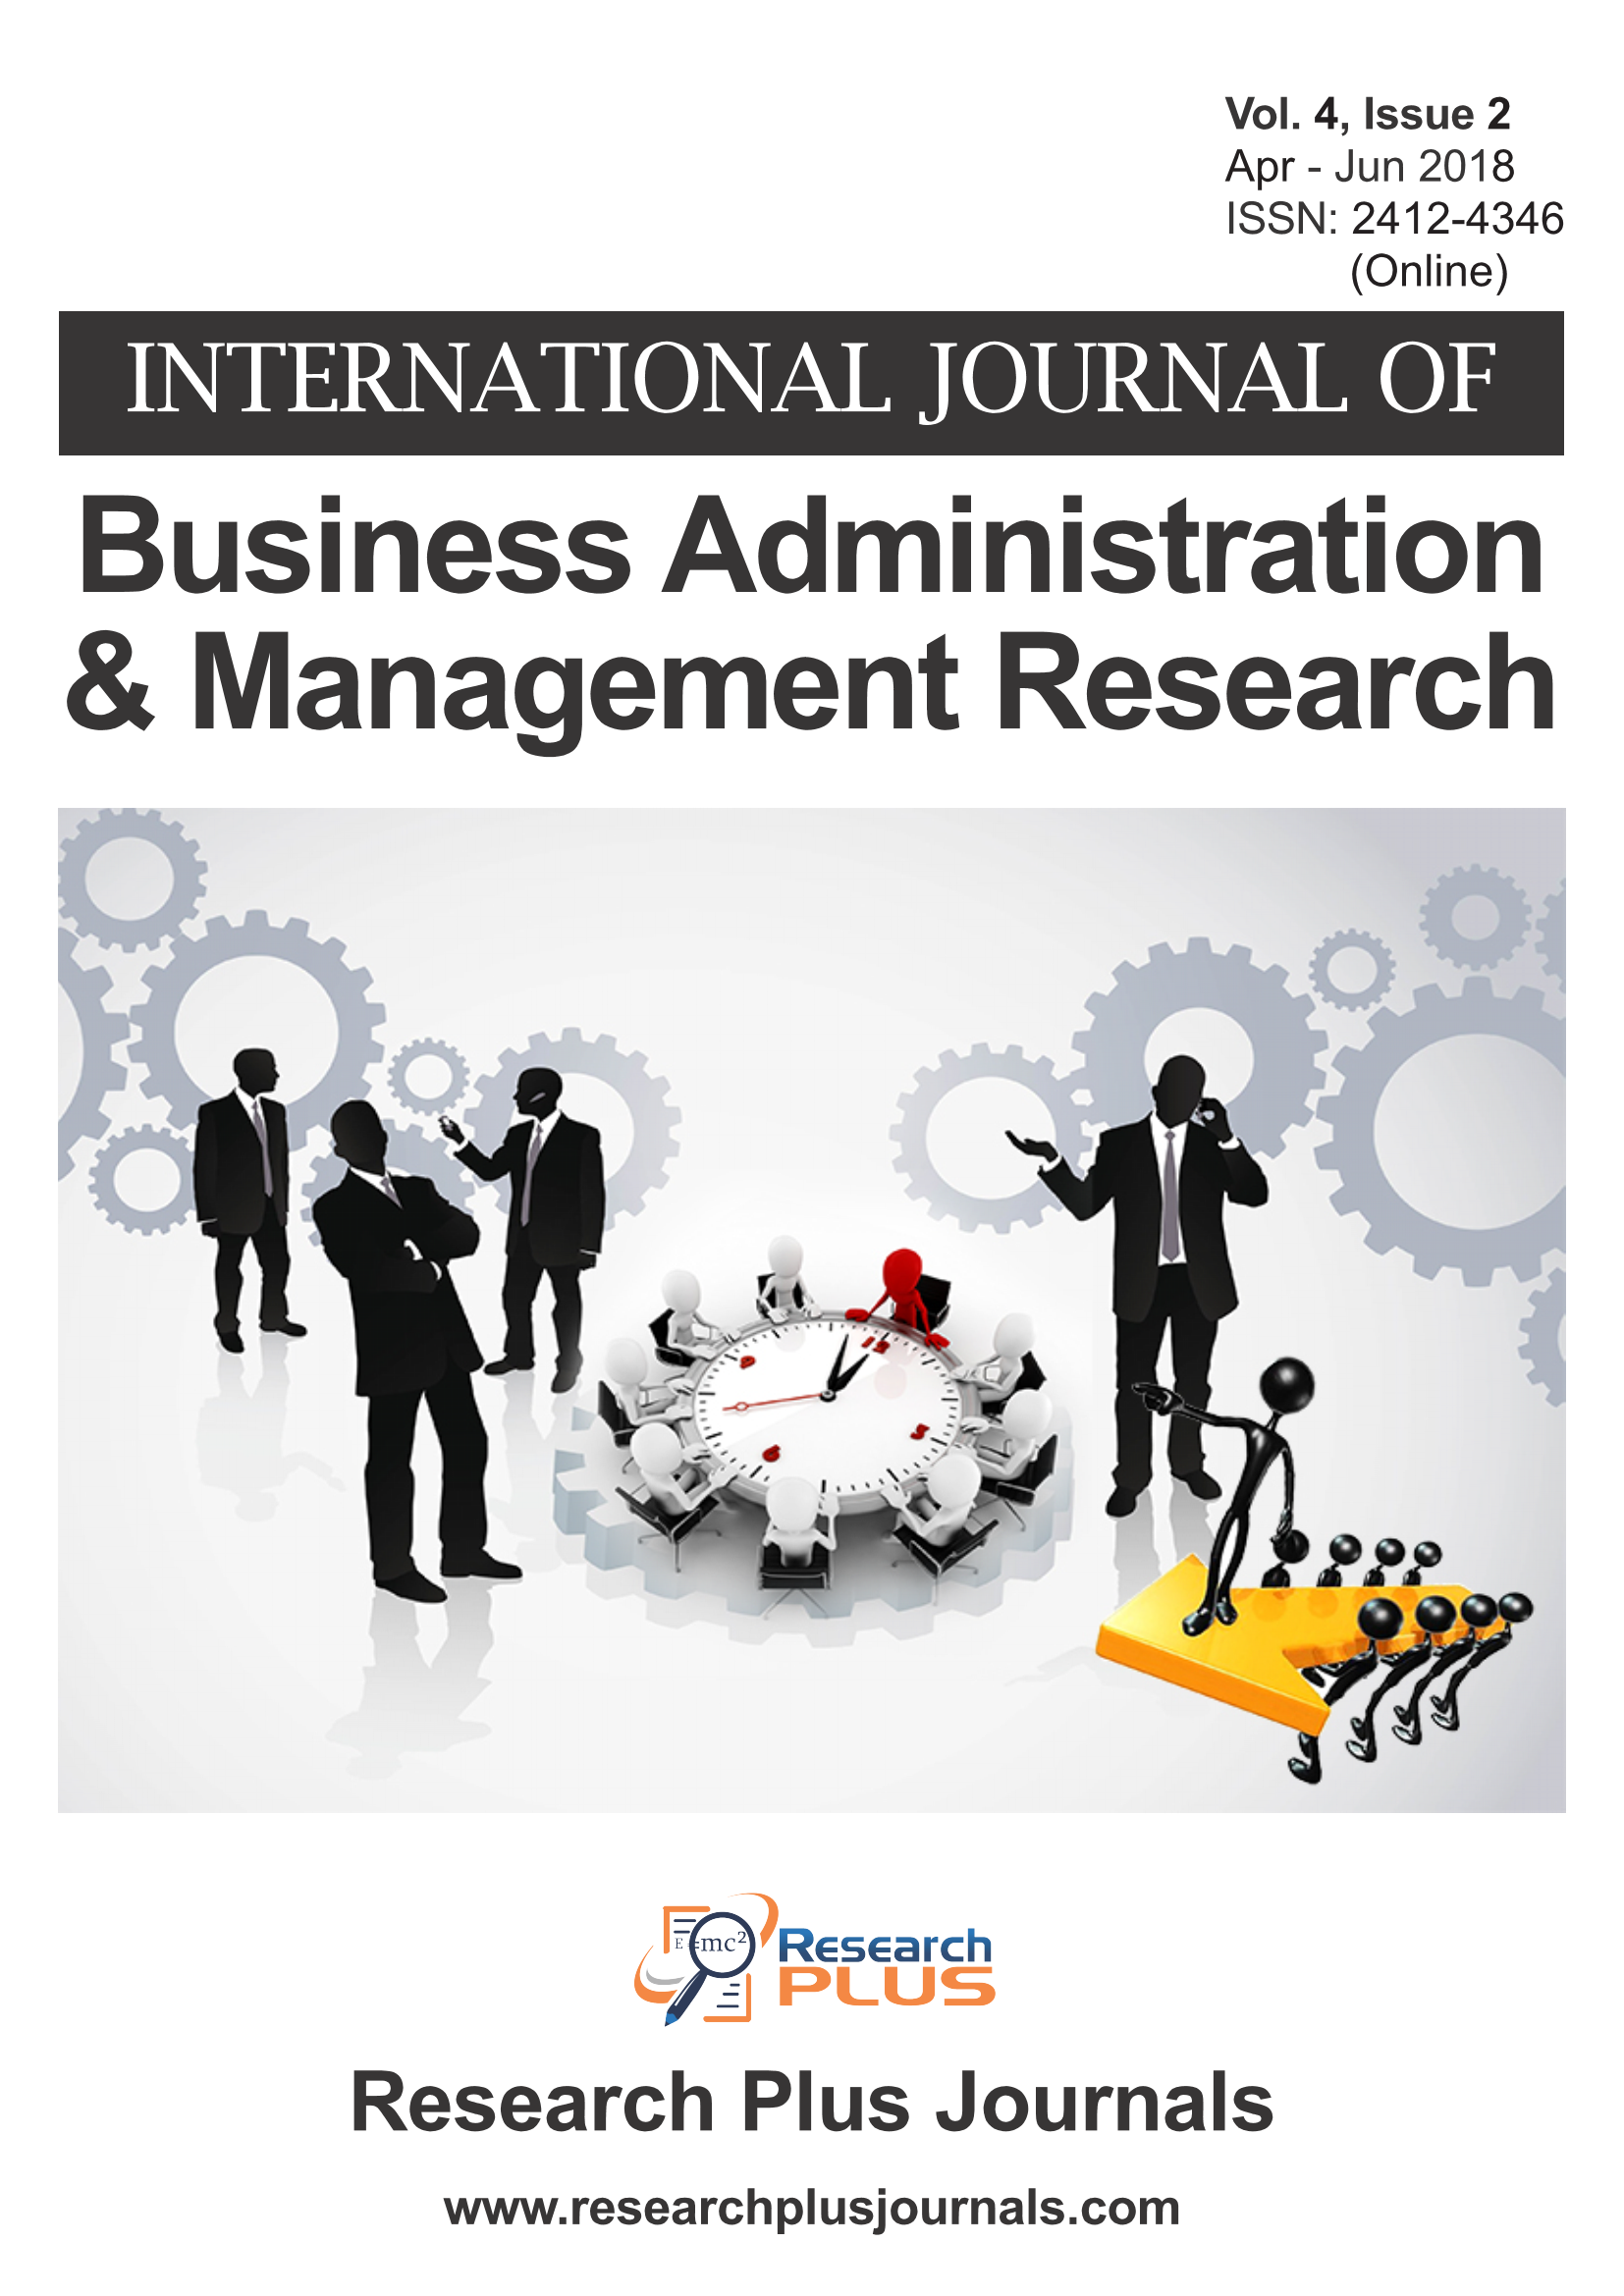 Volume 4, Issue 2, International Journal of Business Administration and Management Research (IJBAMR) (Online ISSN: 2412-4346)